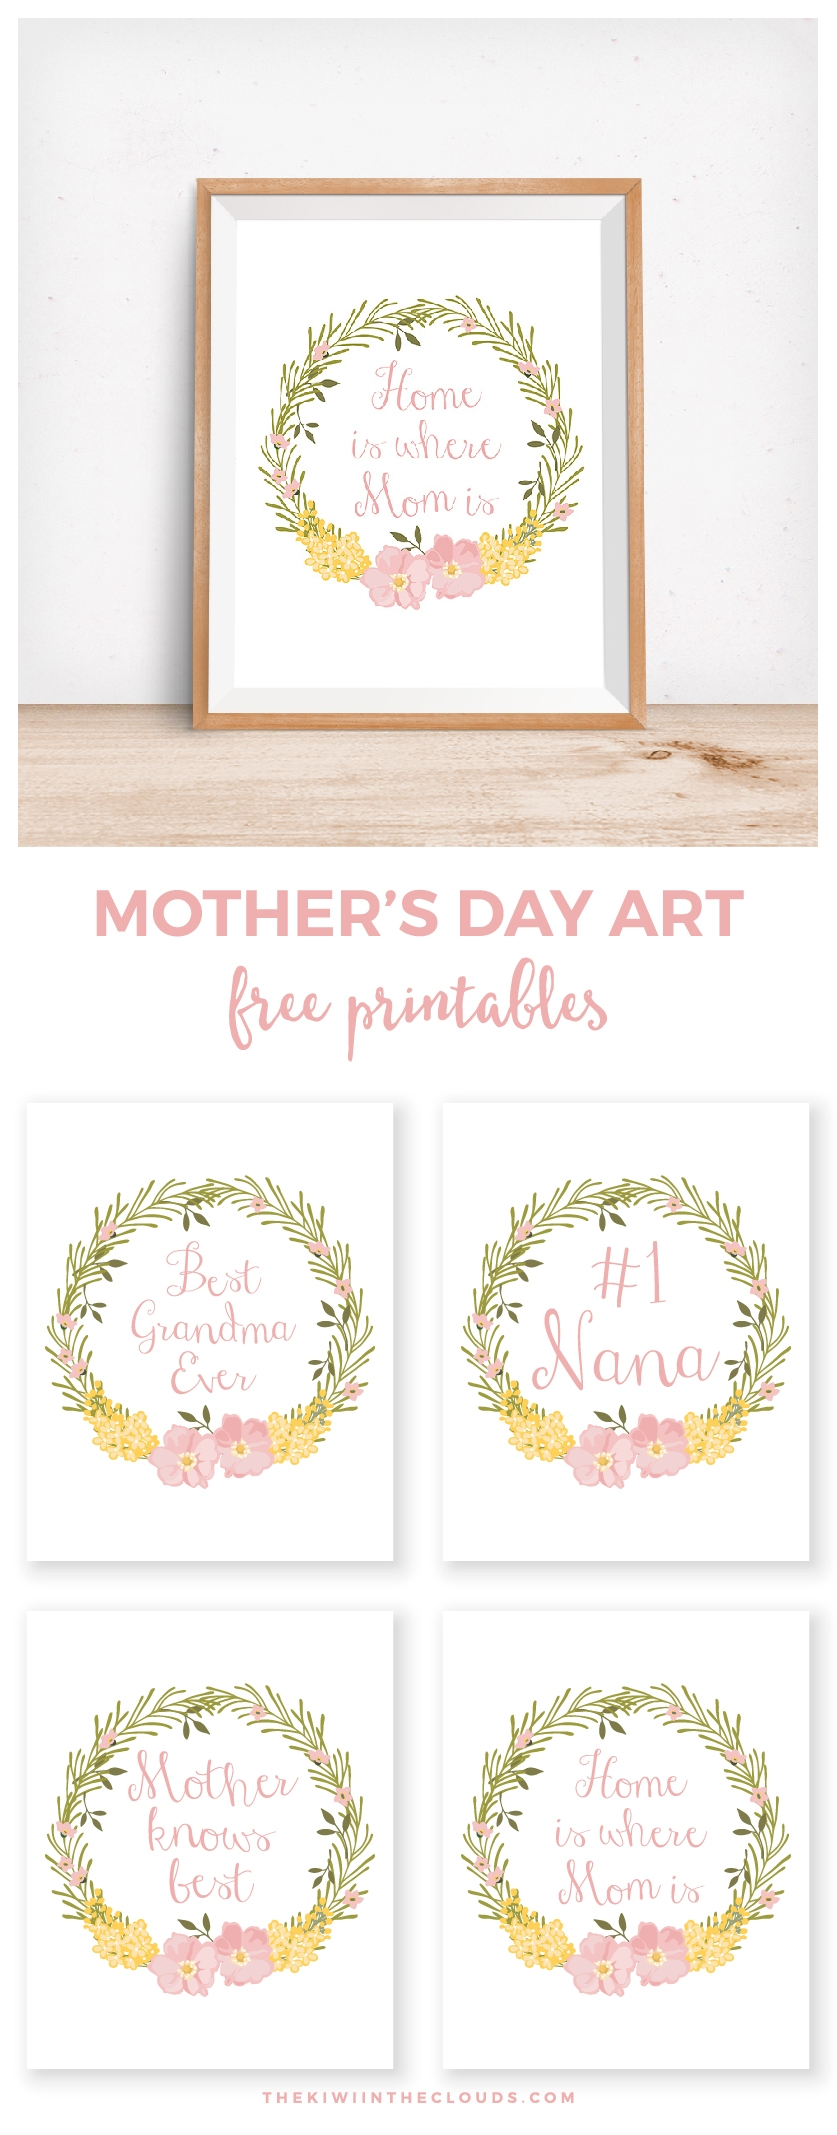 mother's day wall art